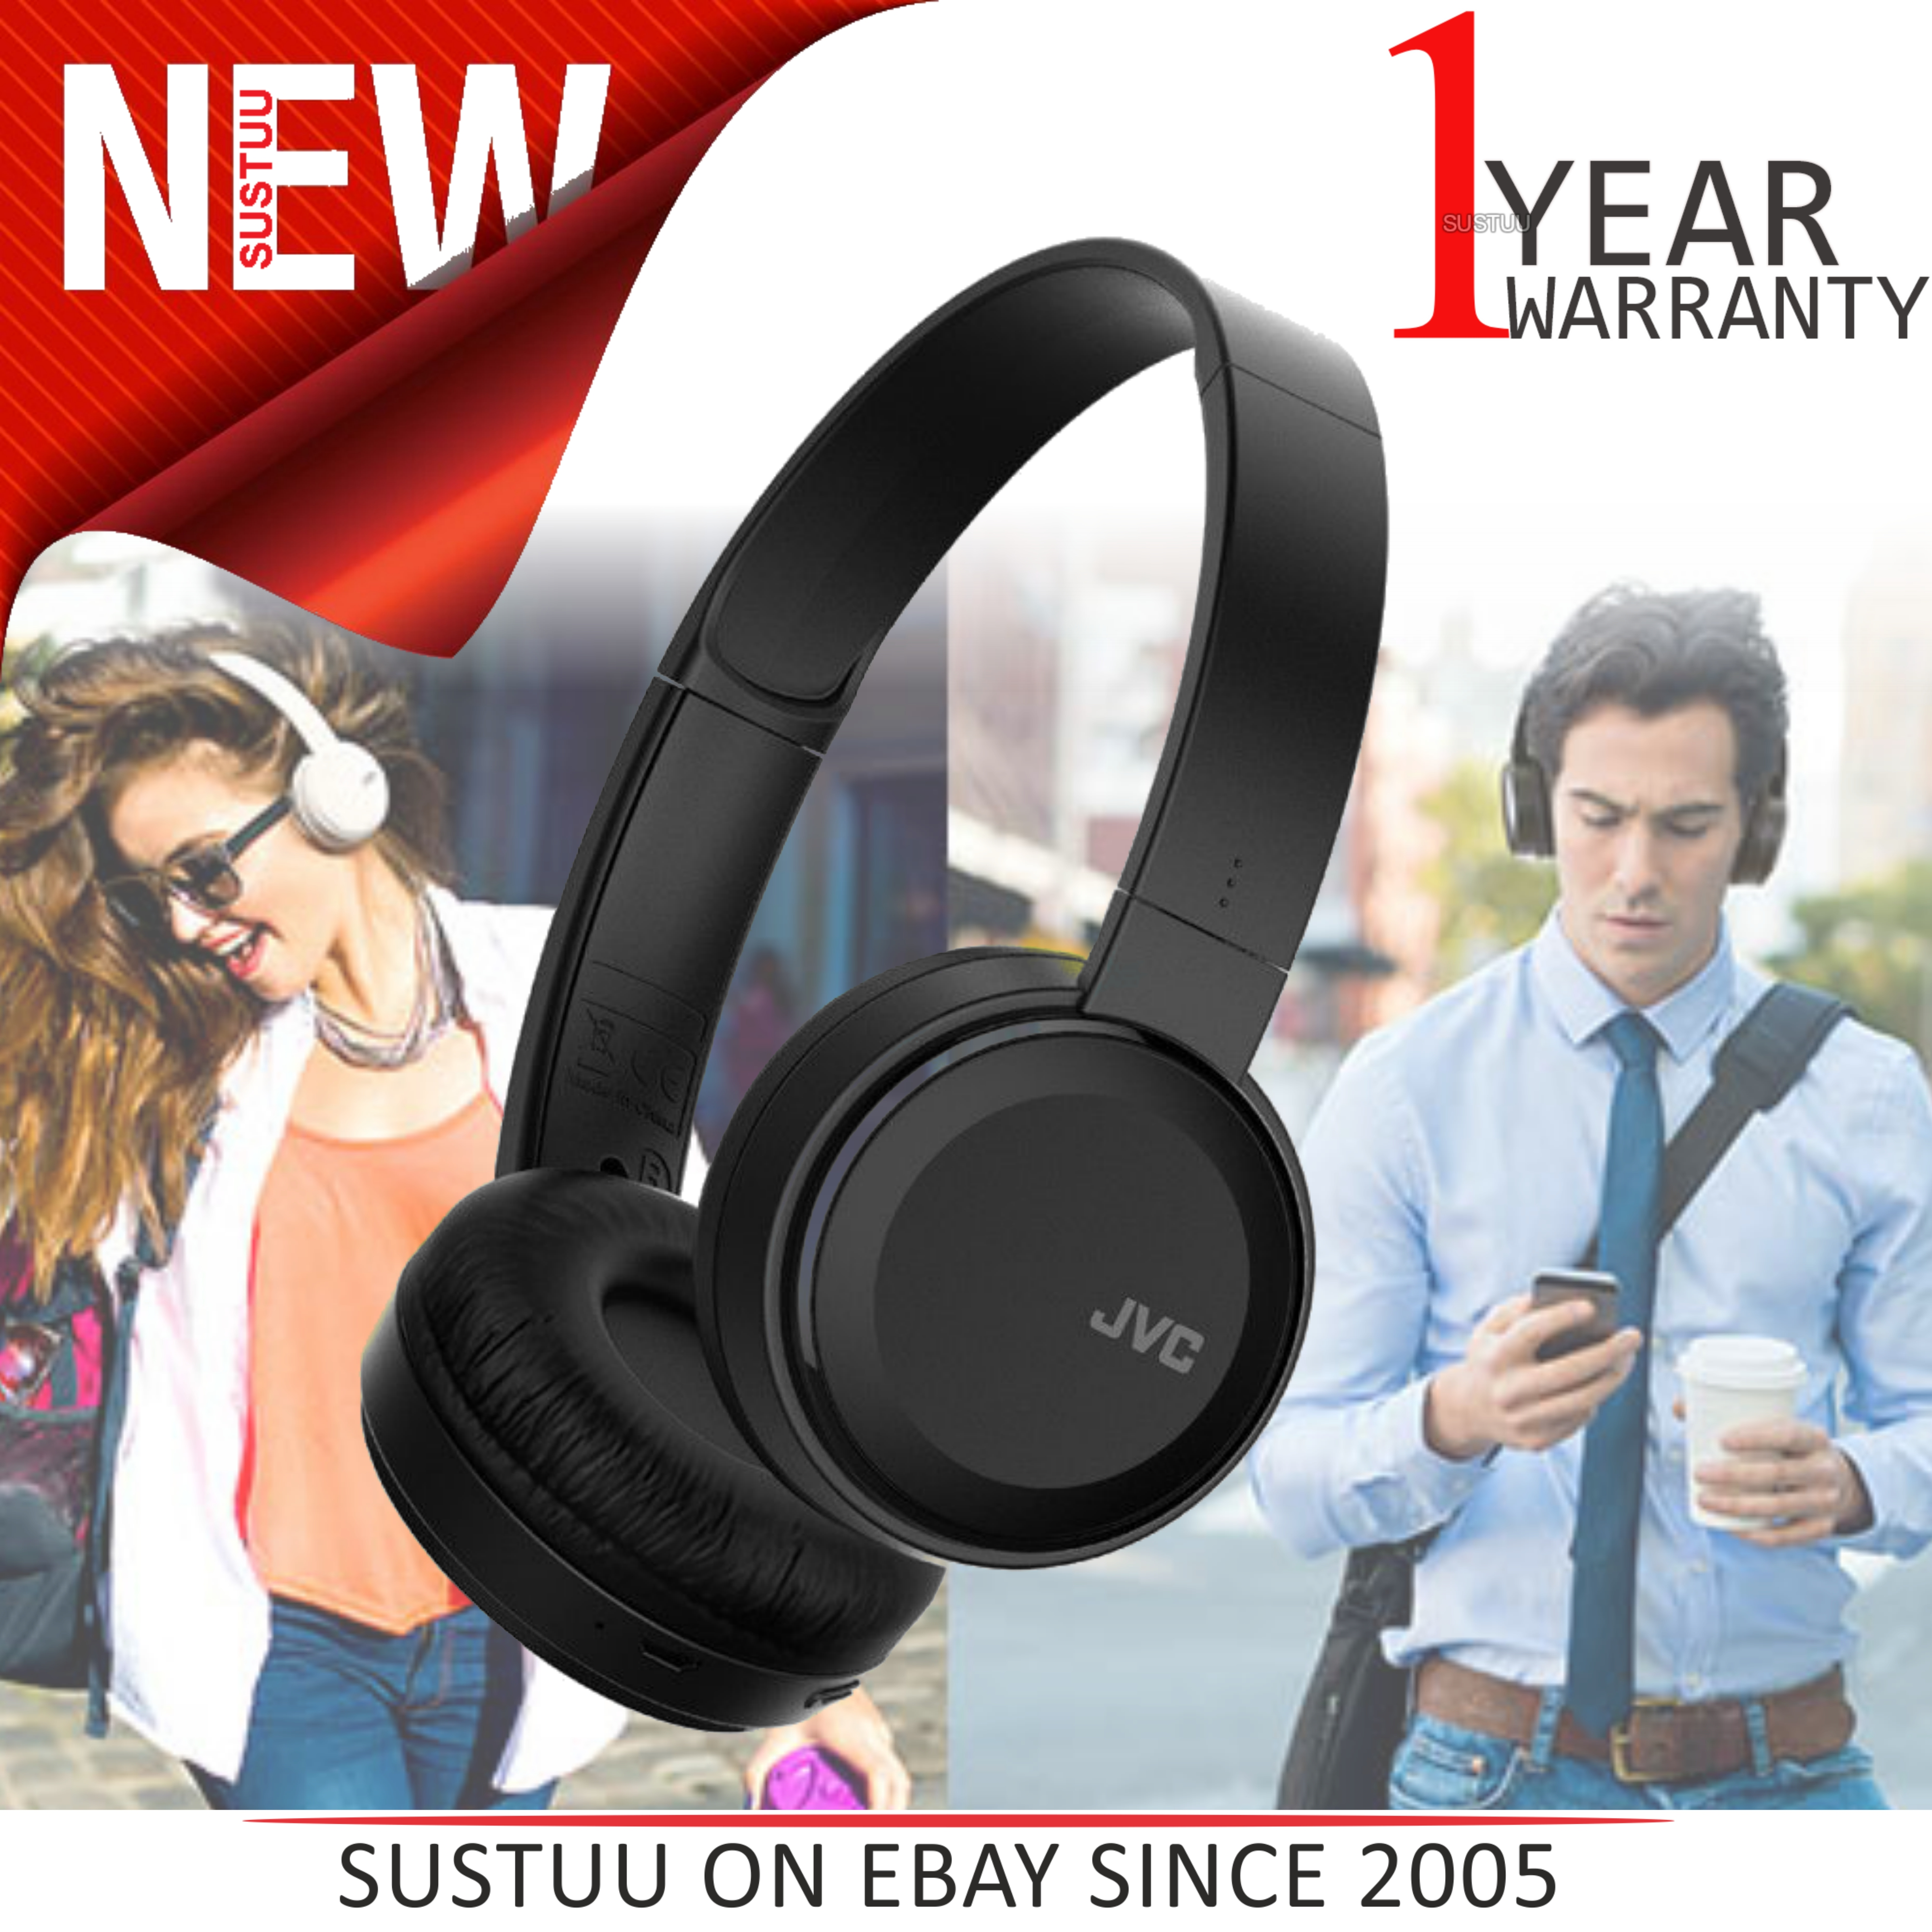 7bbd4baff63 Details about JVC HAS30BTBE Deep Bass On Ear Headphones│Wireless│Bluetooth │Foldable│Black│NEW